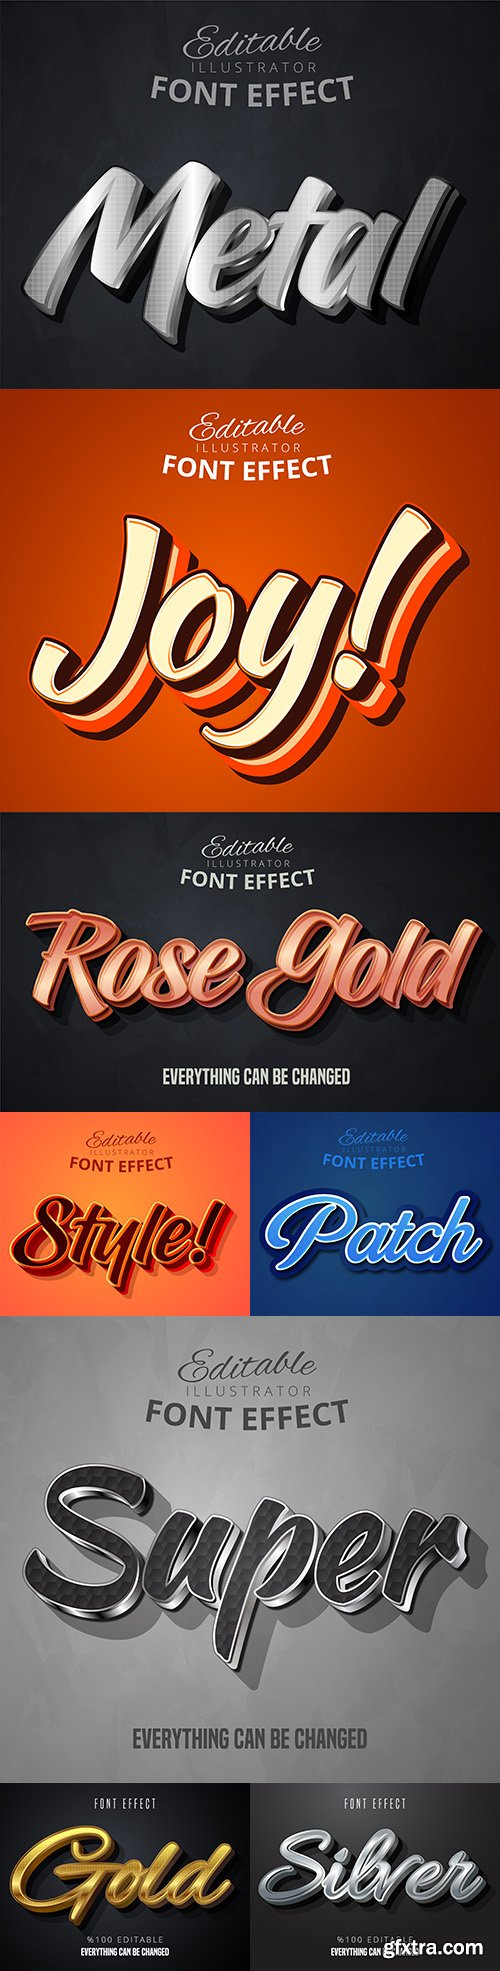 3d font effect editable text collection illustration 7